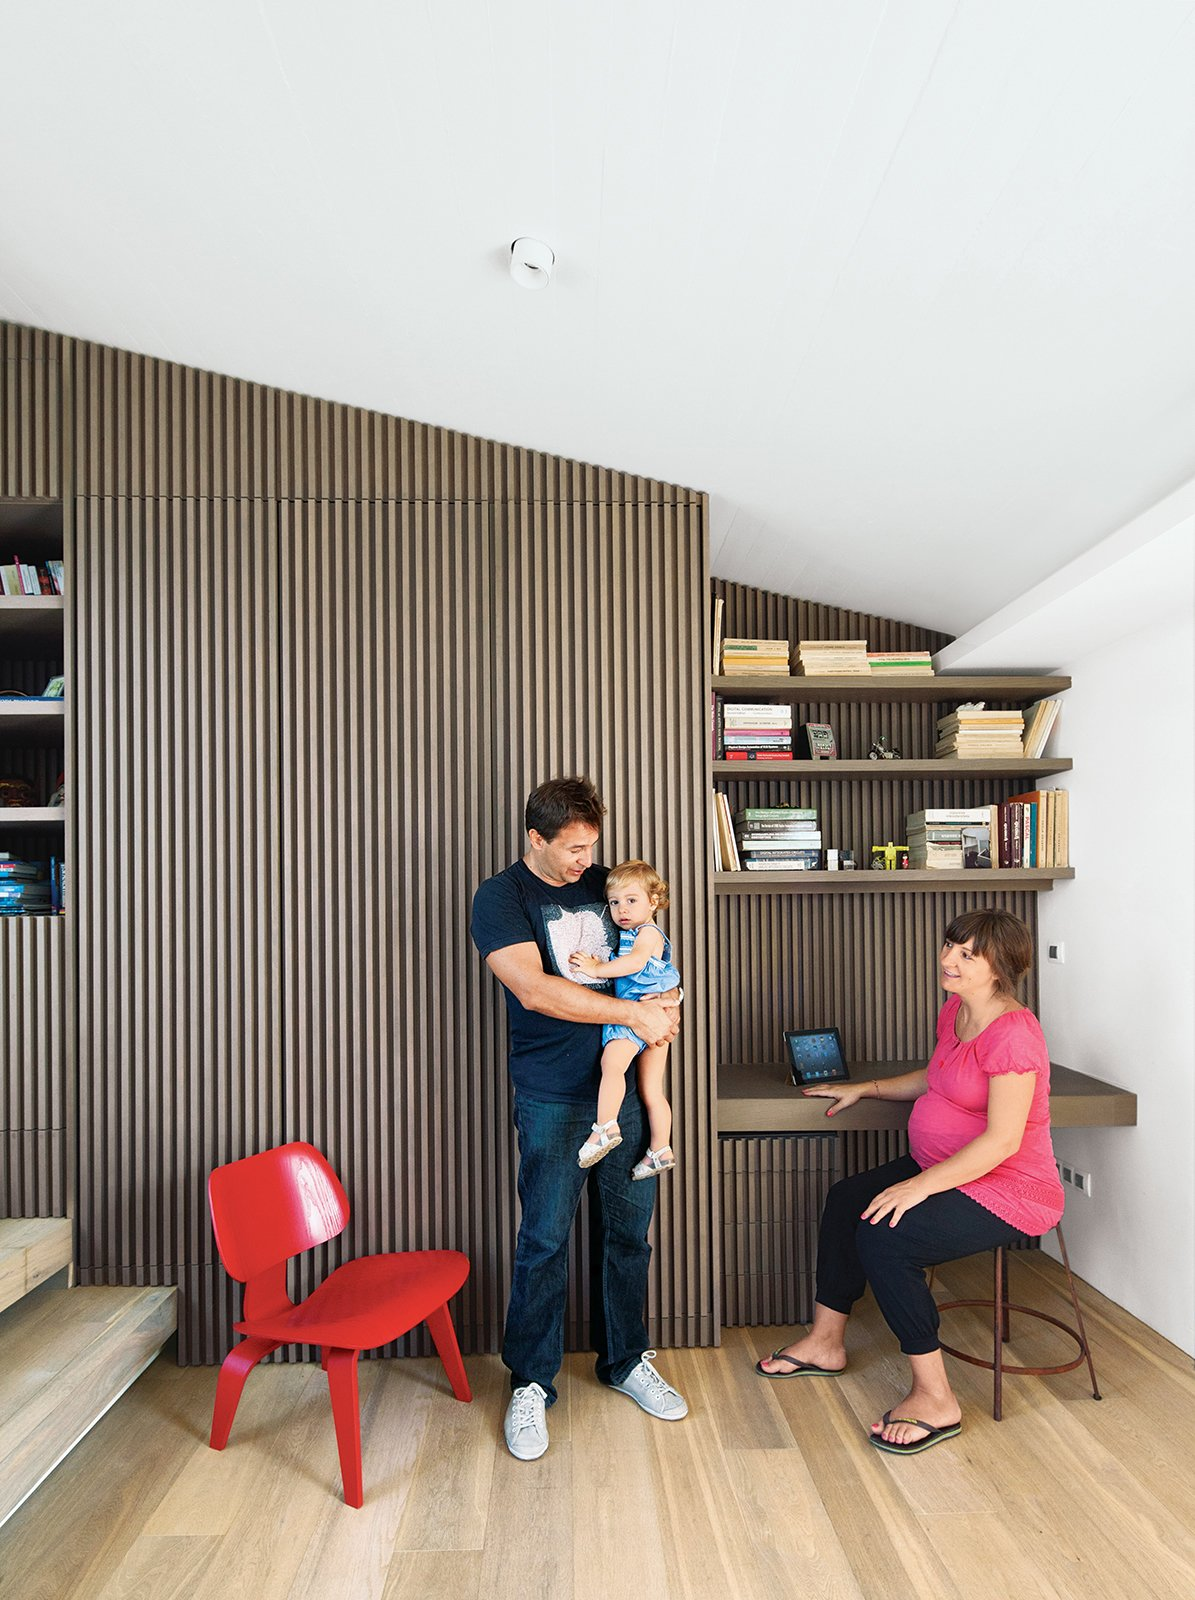 Iason Vassiliou, Maria Voutsina, and their daughter, Angeliki, relax in a landing-level office at their apartment in Athens, Greece. Tagged: Office, Chair, Desk, Shelves, and Light Hardwood Floor.  Ideal Angles by Jill Southern from Odd Angles Don't Stop This Apartment's Transformation